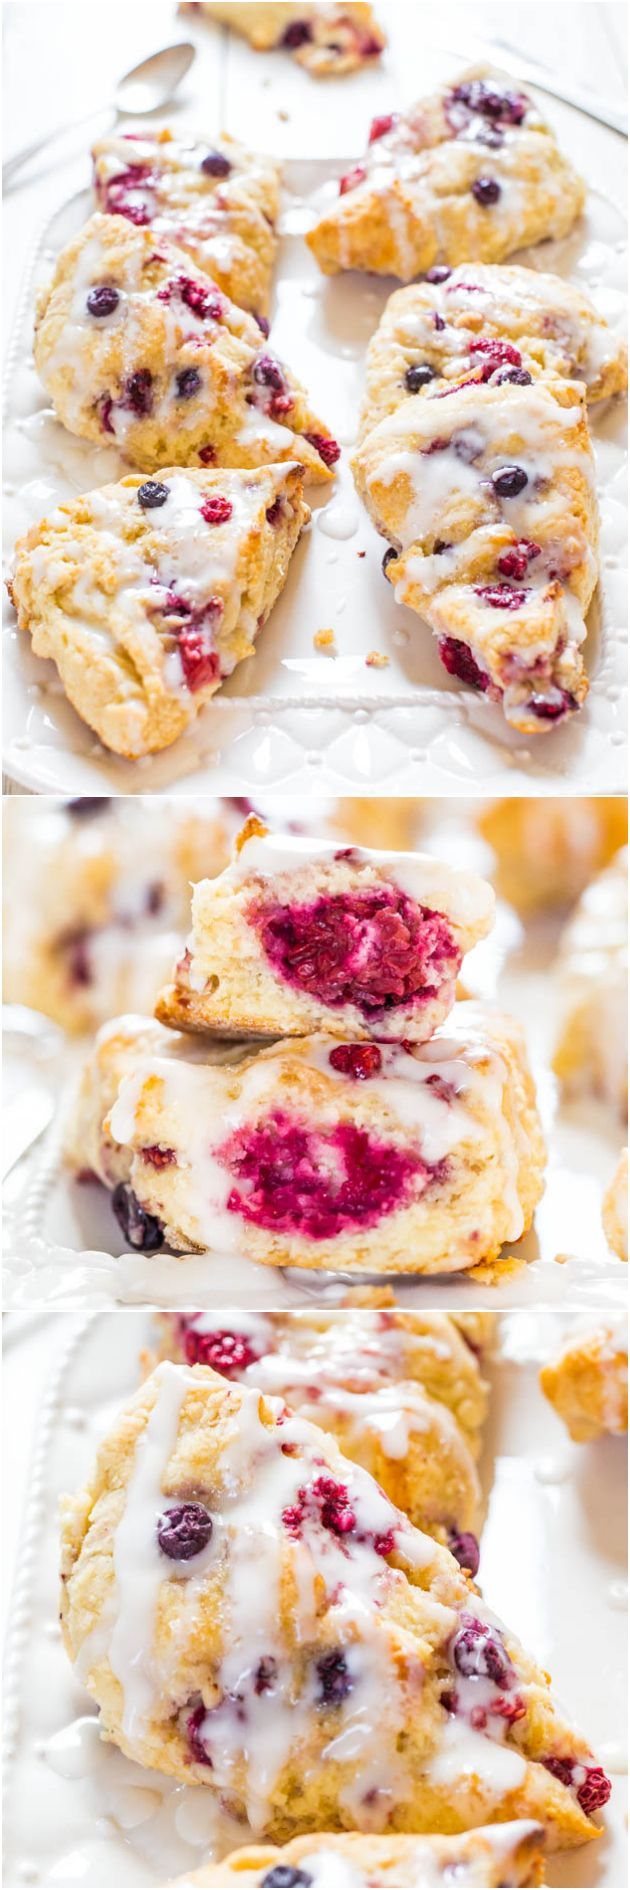 The Best Glazed Mixed Berry Scones - If you've always thought scones were dry, this easy recipe will change your mind forever!: Glaze Mixed, Breads Scon, Berries Scones, Recipes Scones, Mixed Berries, Avery Cooking, Thoughts Scones, Easy Recipes, Mind Forever